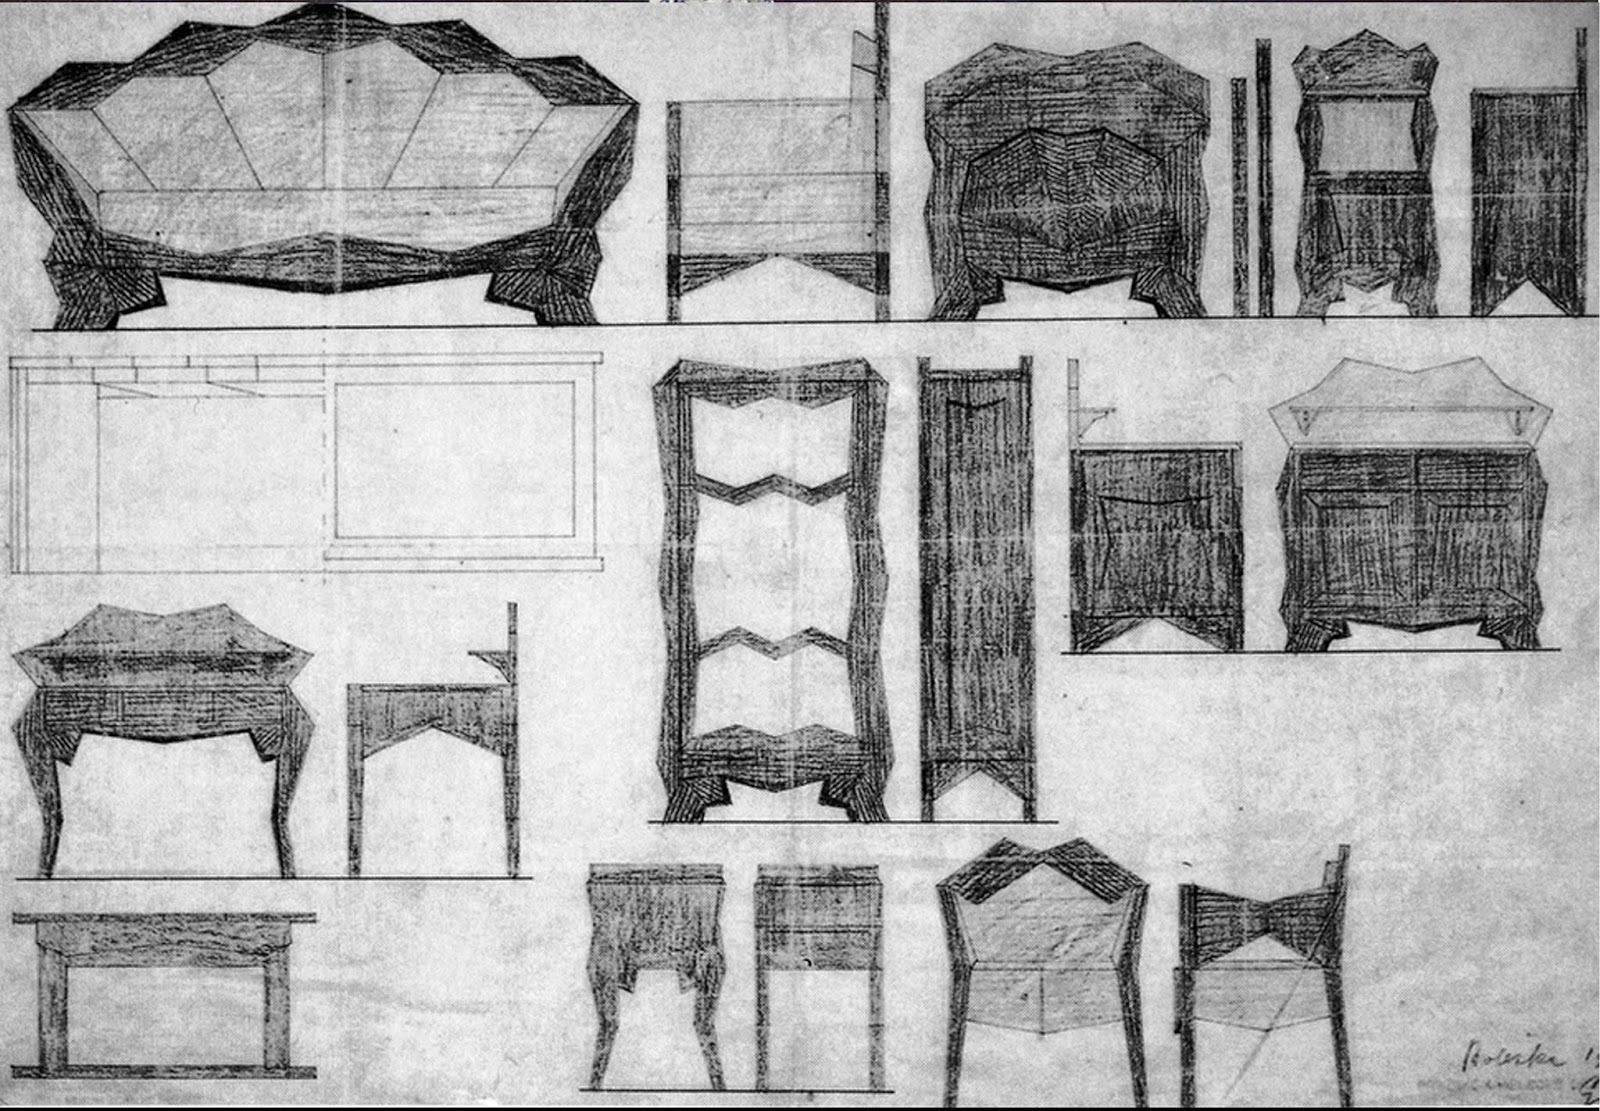 designs for furniture 1913_josef_gocar.jpg